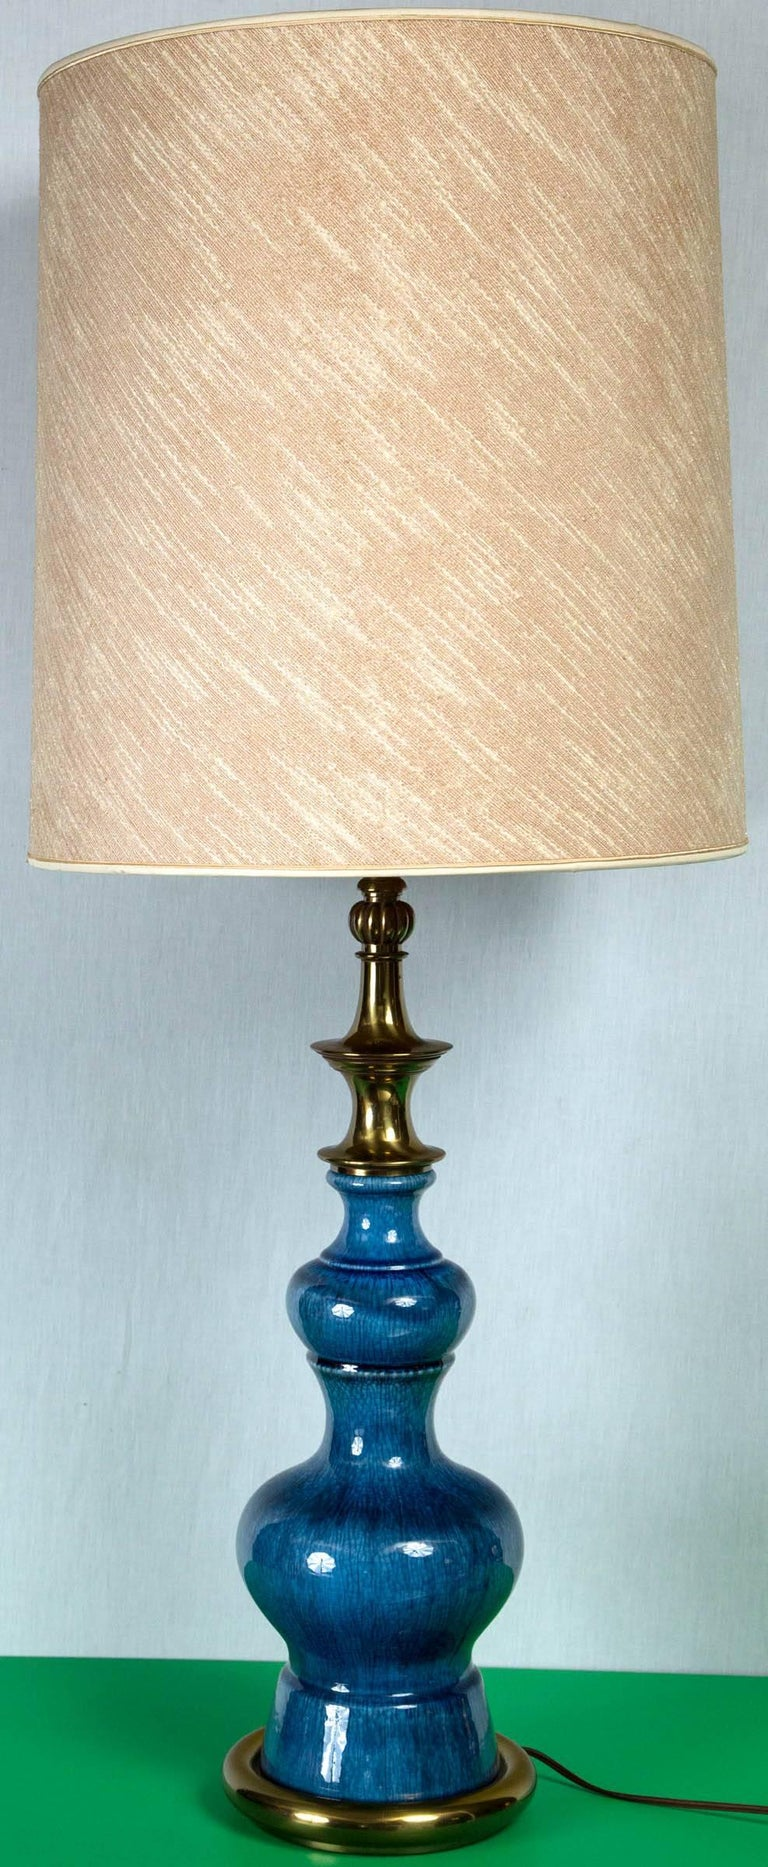 Pair of Midcentury Modern Blue Ceramic Stiffel Lamps with Original Shades For Sale 1